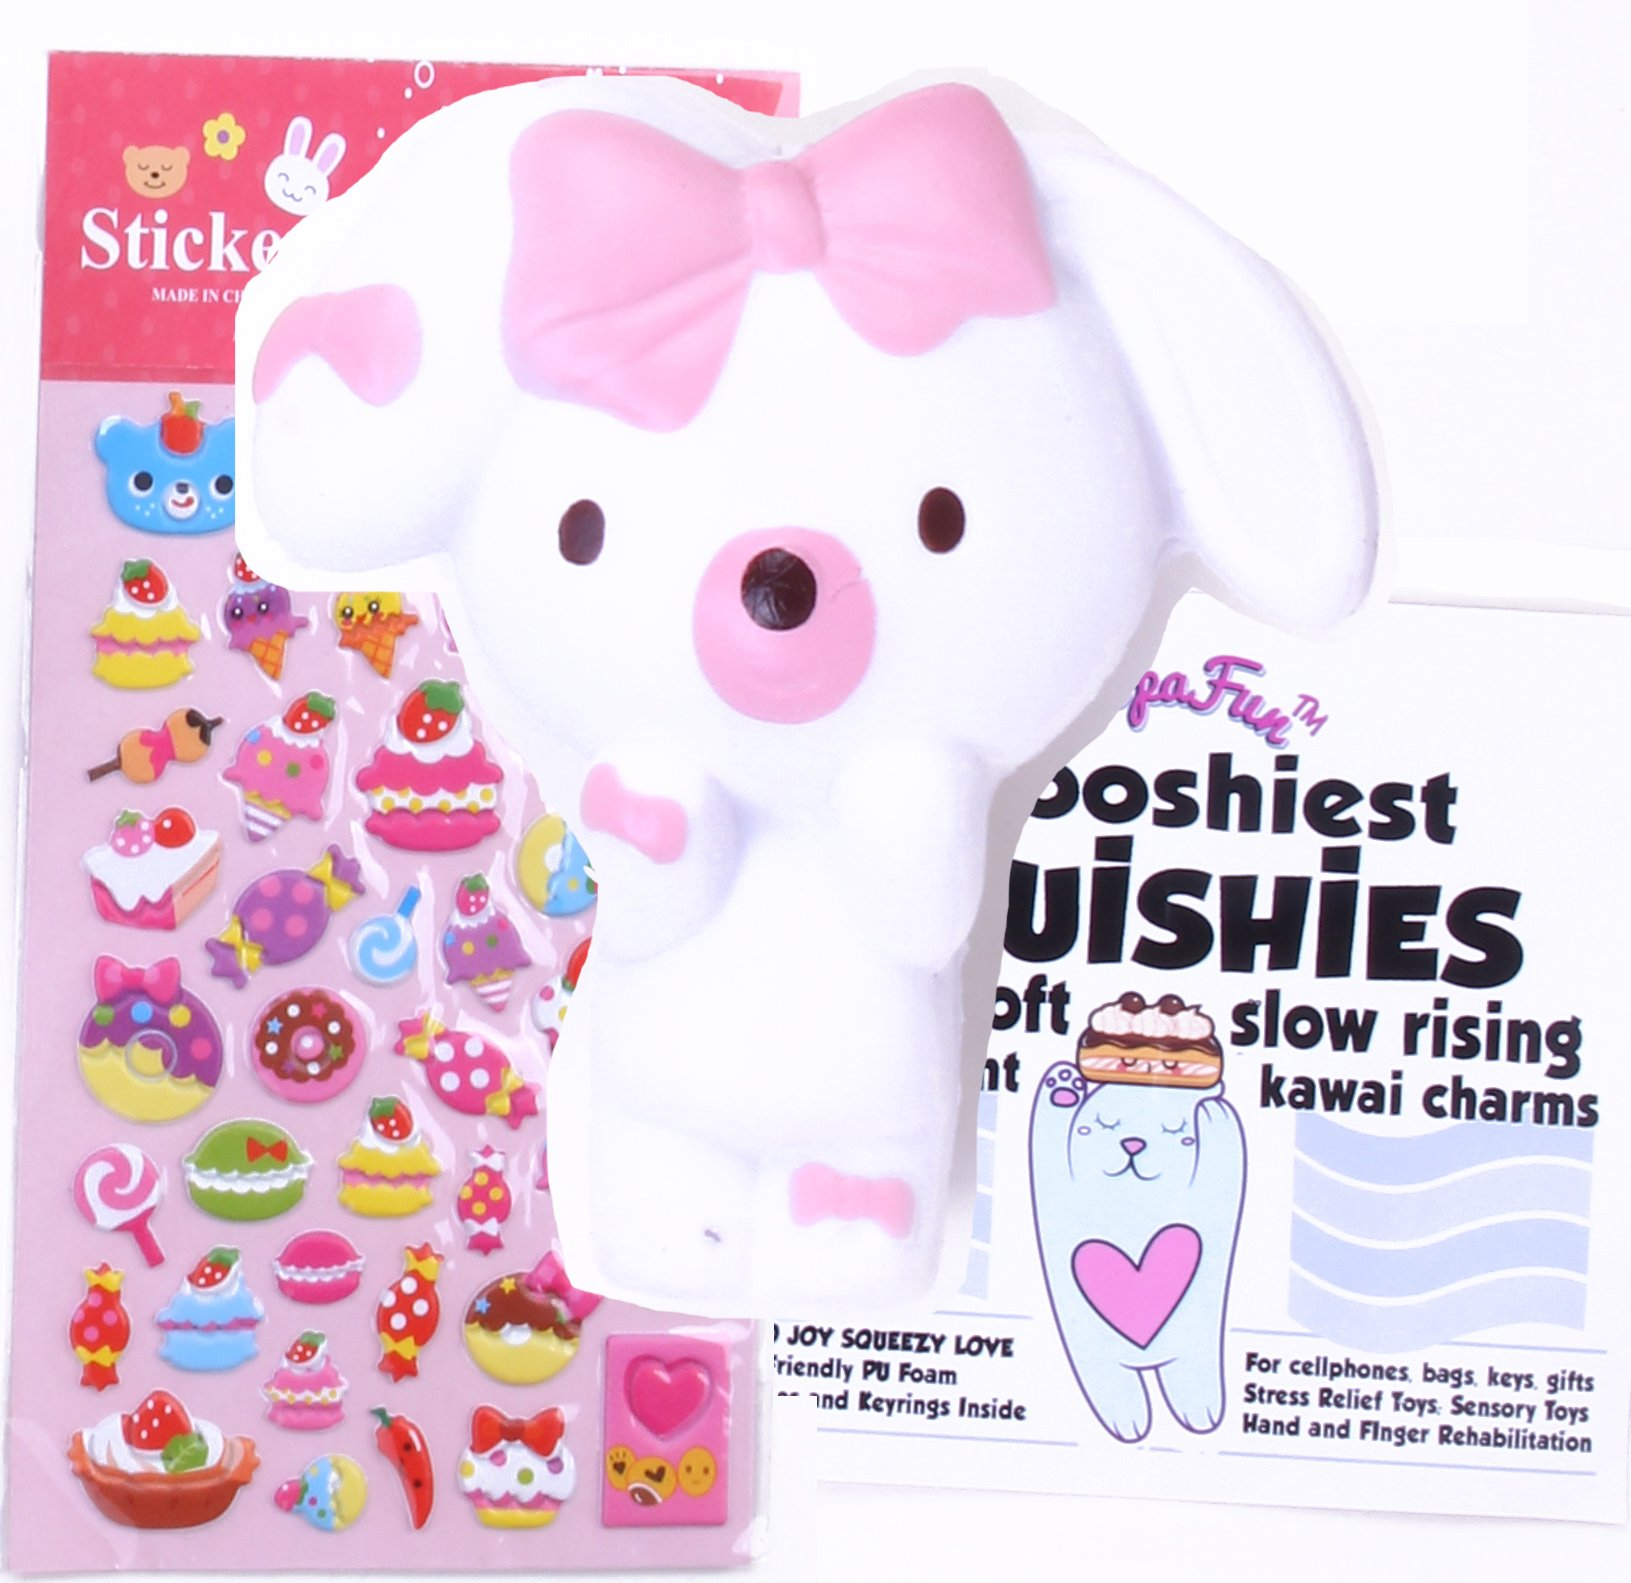 Felix and Wise - ShopaFun Puppy Dog Soft Creamy Scented Squishy Kawaii / Slow Rising Stress Relief Squeeze Toy / Bonus Puffy Stickers